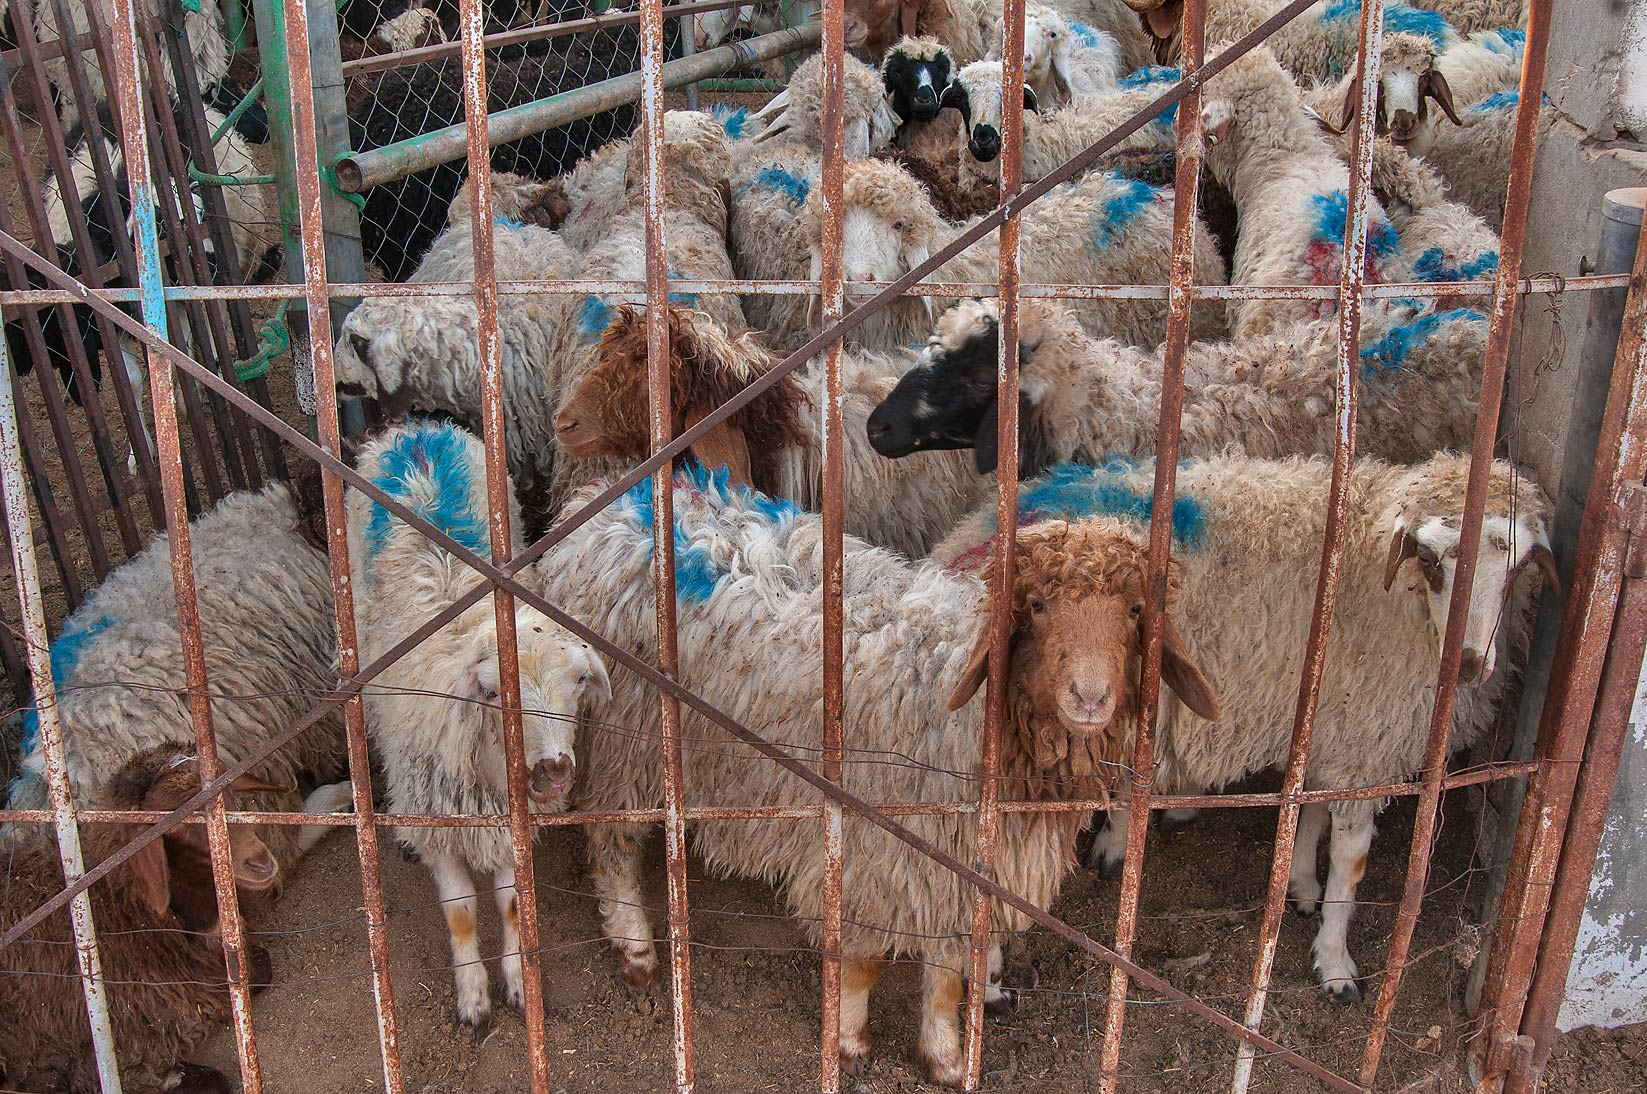 Sheep herd in a pen in Sheep Market, Wholesale Markets area. Doha, Qatar